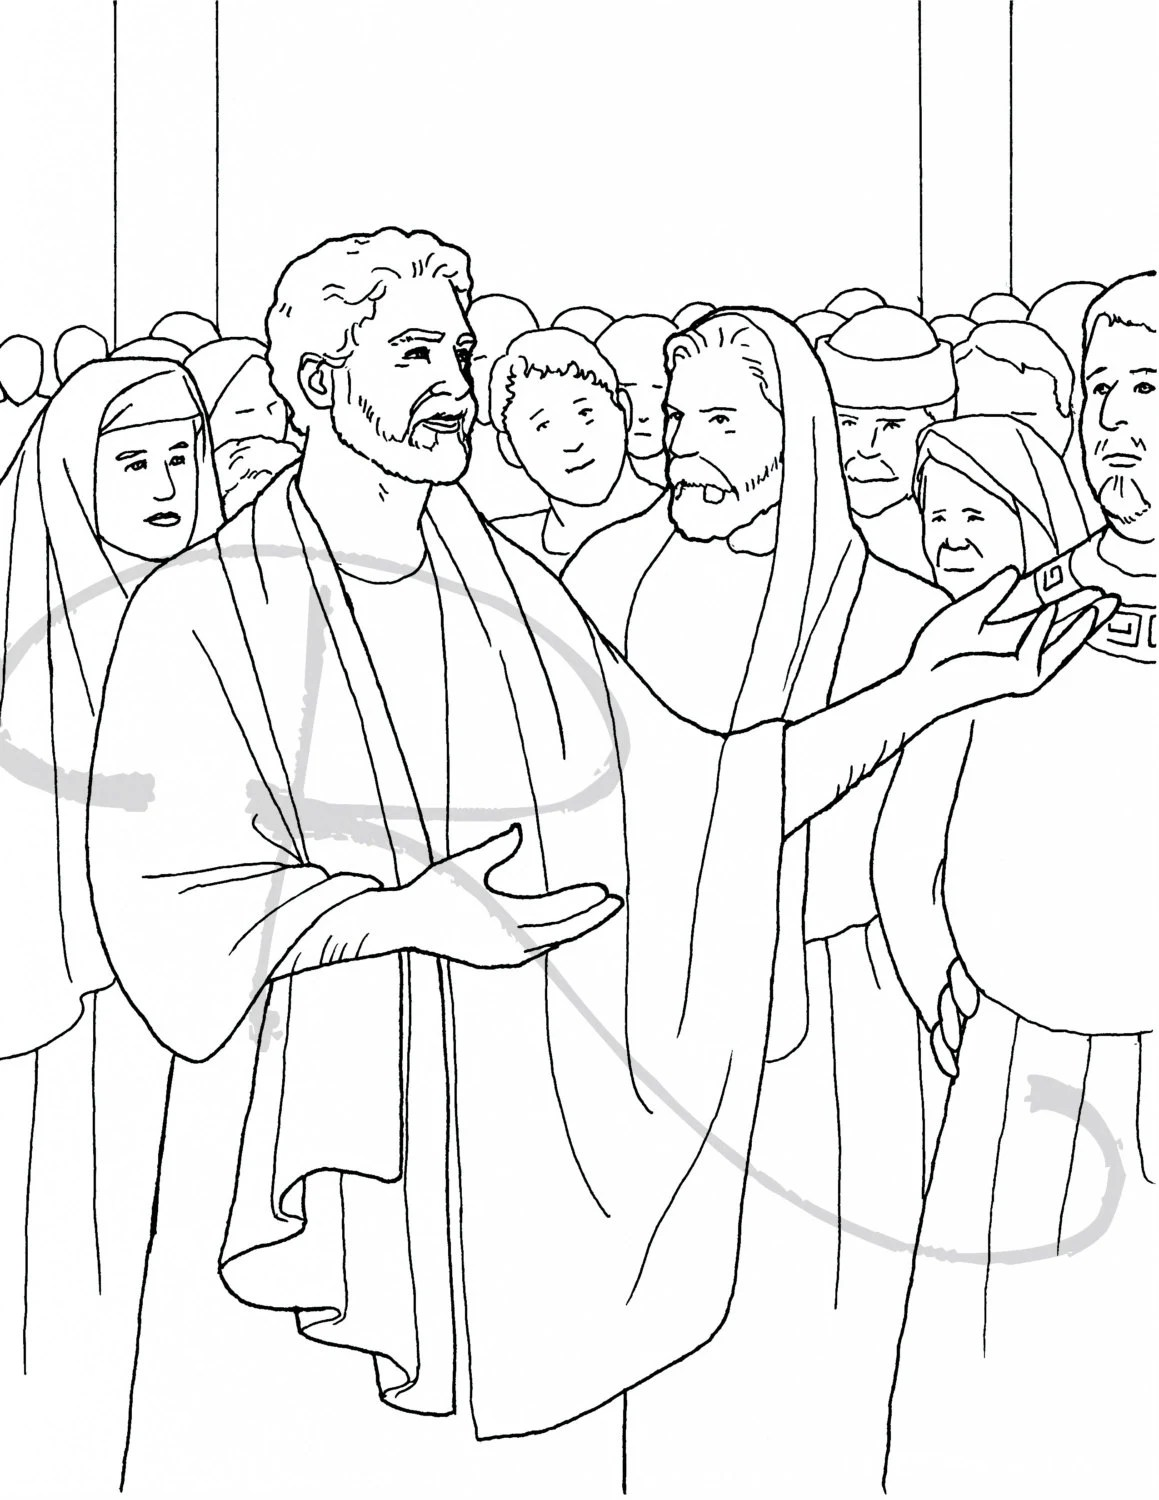 Popular items for bible coloring page on Etsy